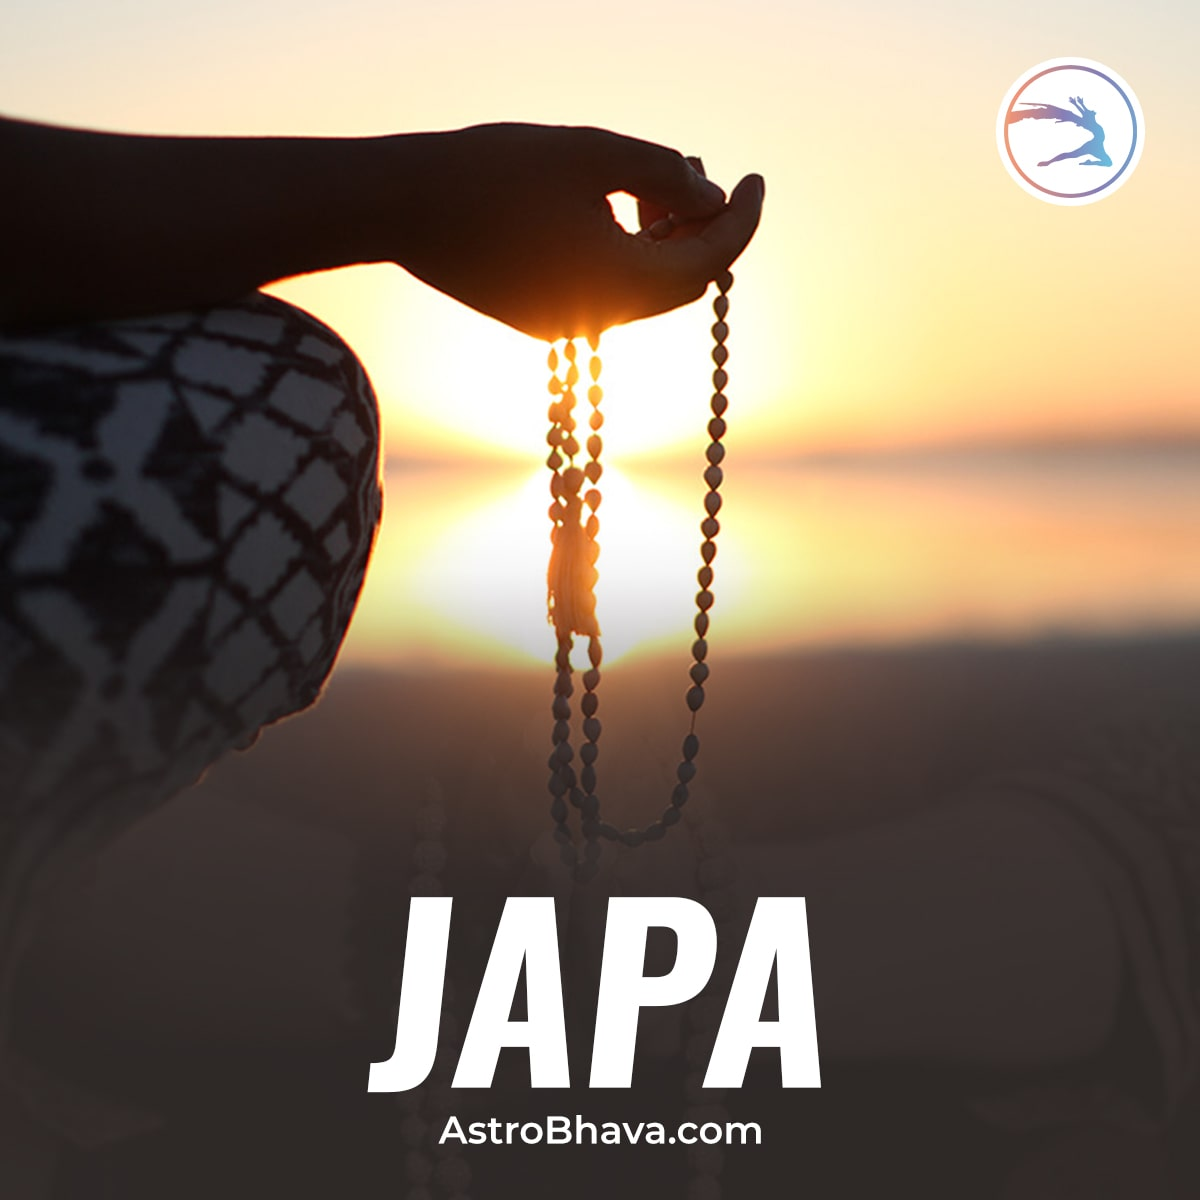 Know The Importance Of Vedic Mantra Japa With AstroBhava